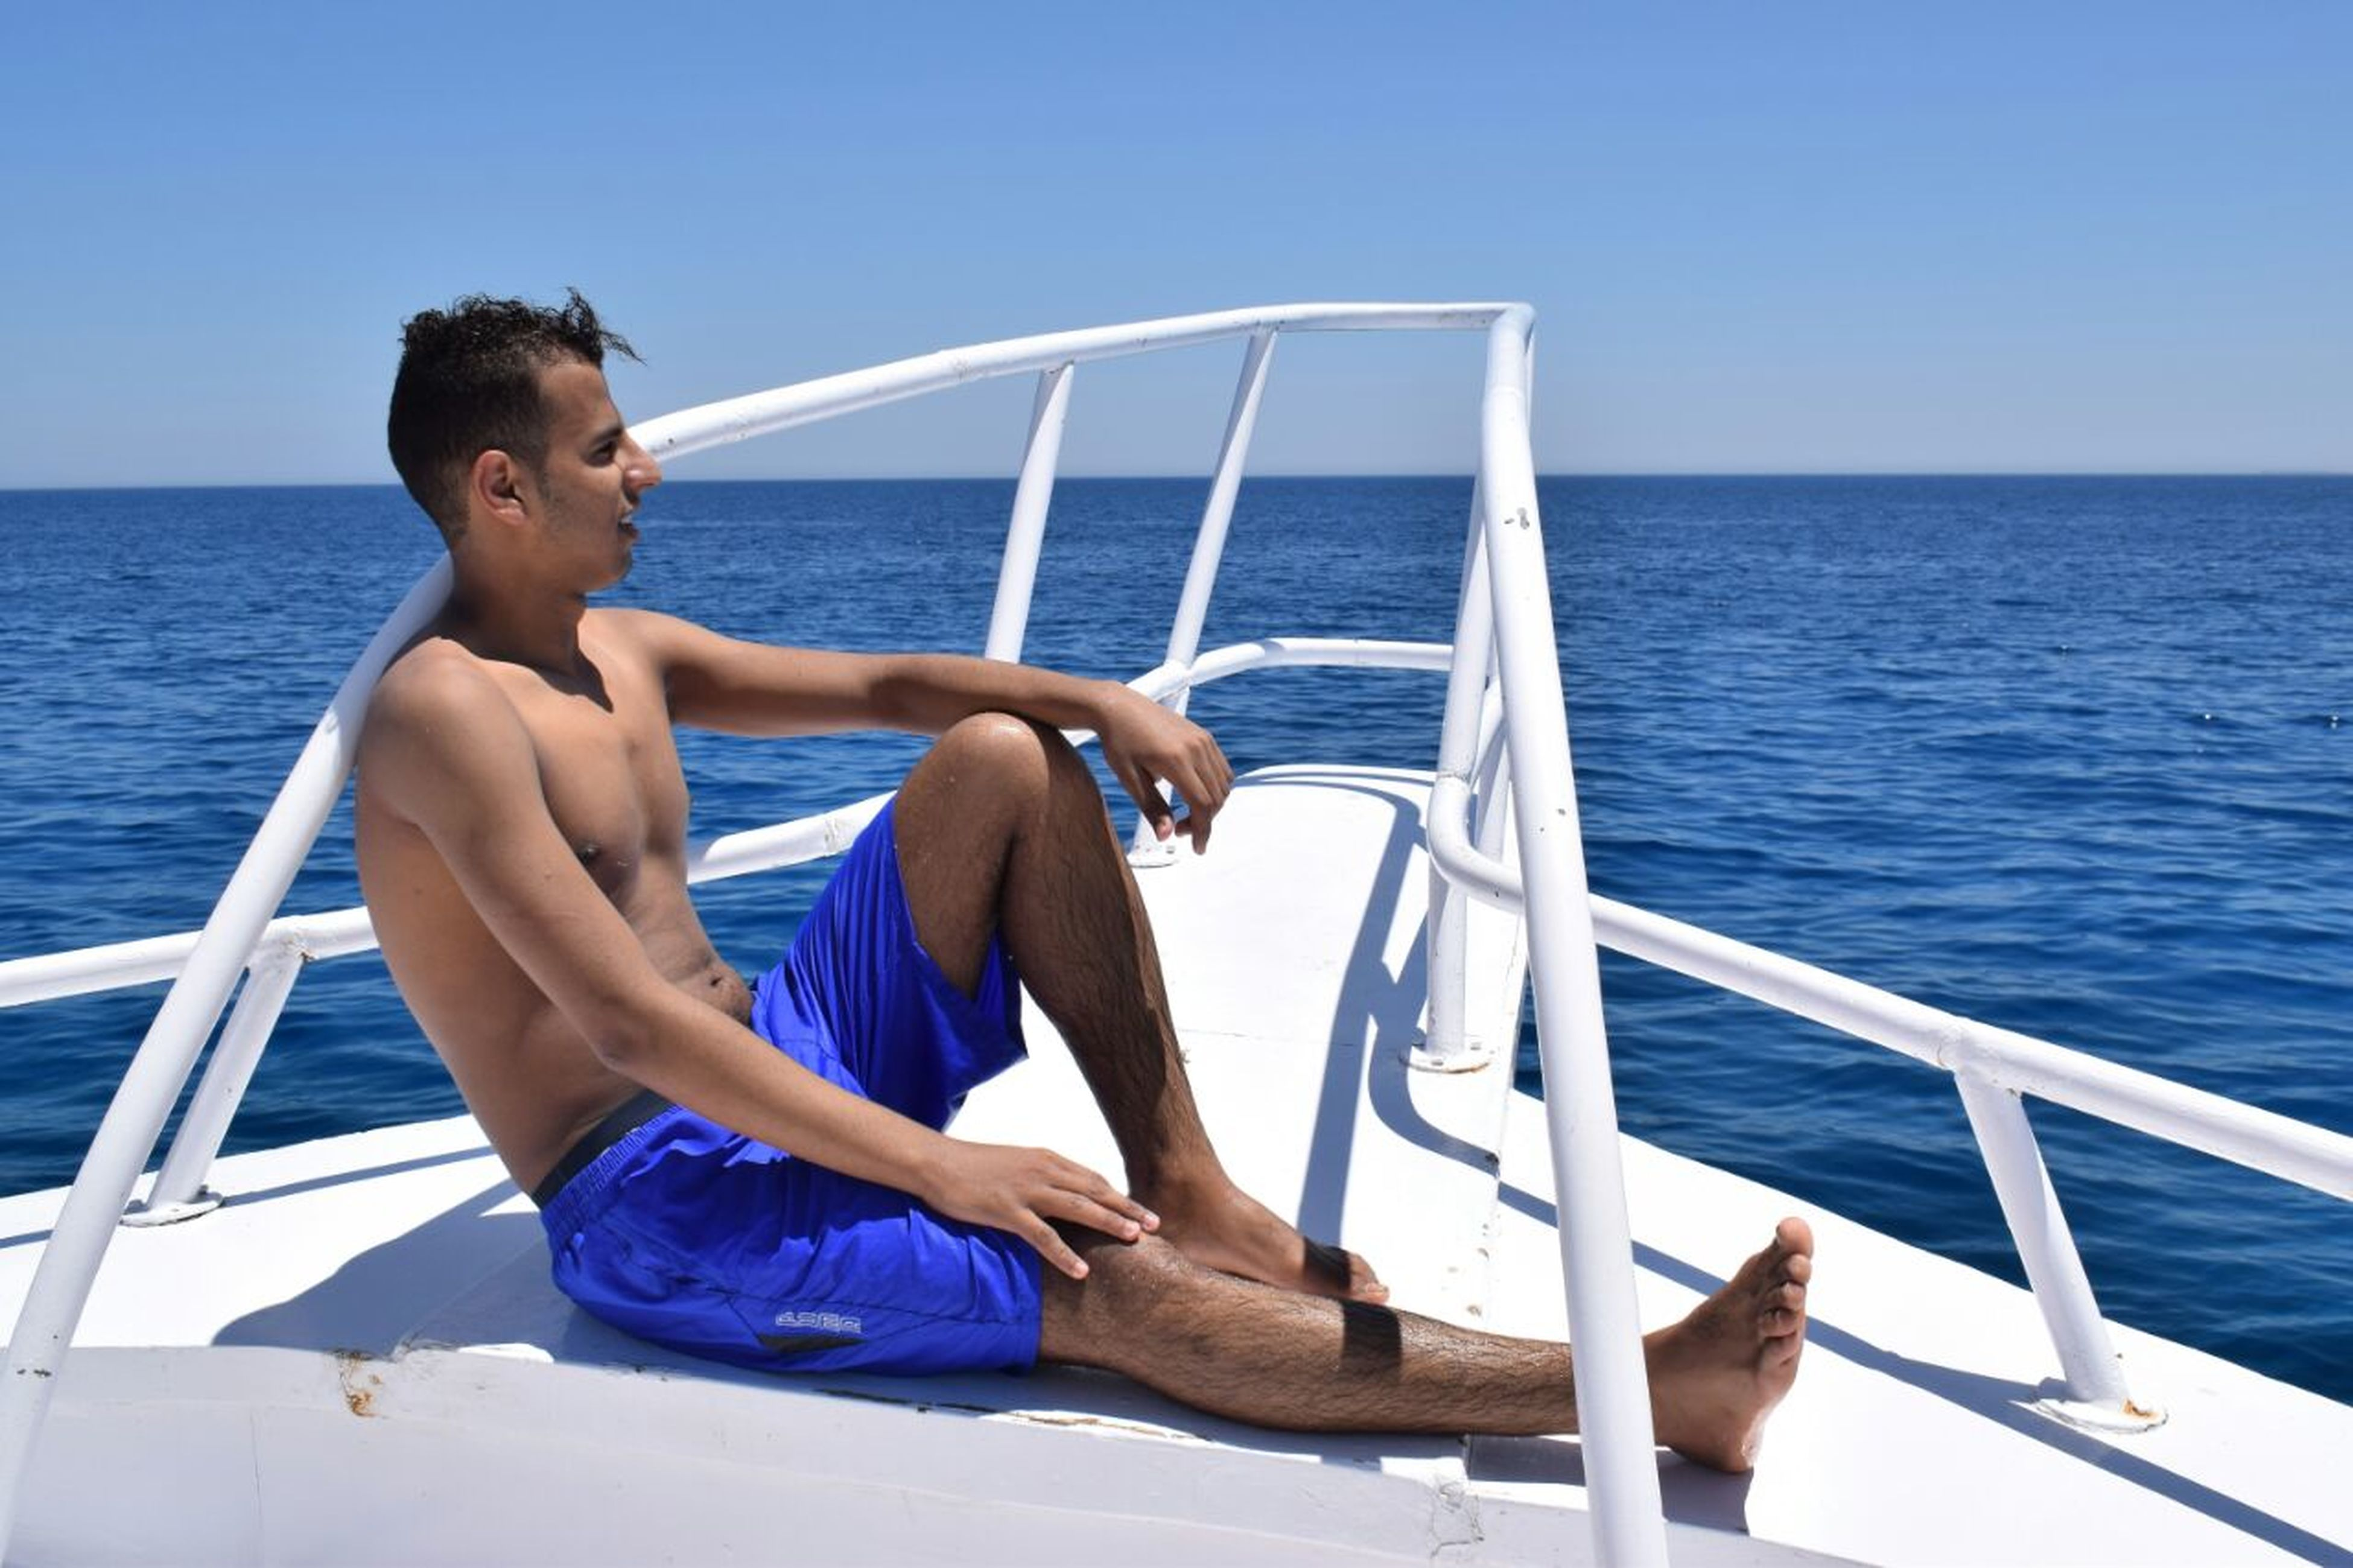 sea, horizon over water, water, nautical vessel, nature, beauty in nature, mode of transport, transportation, sky, leisure activity, sailing, outdoors, summer, one person, lifestyles, full length, men, sunlight, clear sky, scenics, blue, day, young adult, boat deck, real people, people